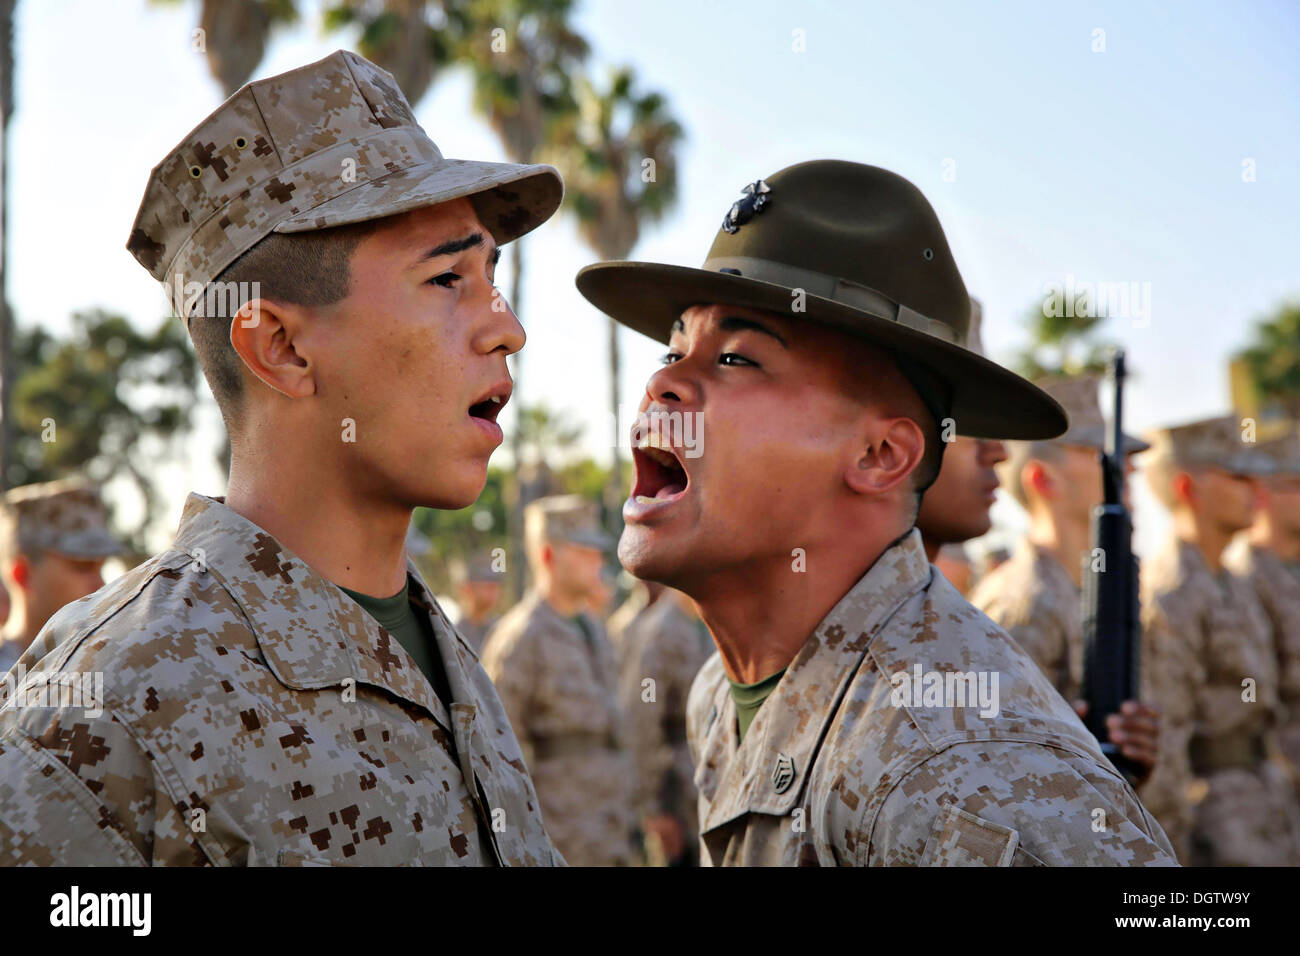 A US Marine Corps drill instructor screams at a recruit during inspection October 21, 2013 in San Diego, CA. - Stock Image